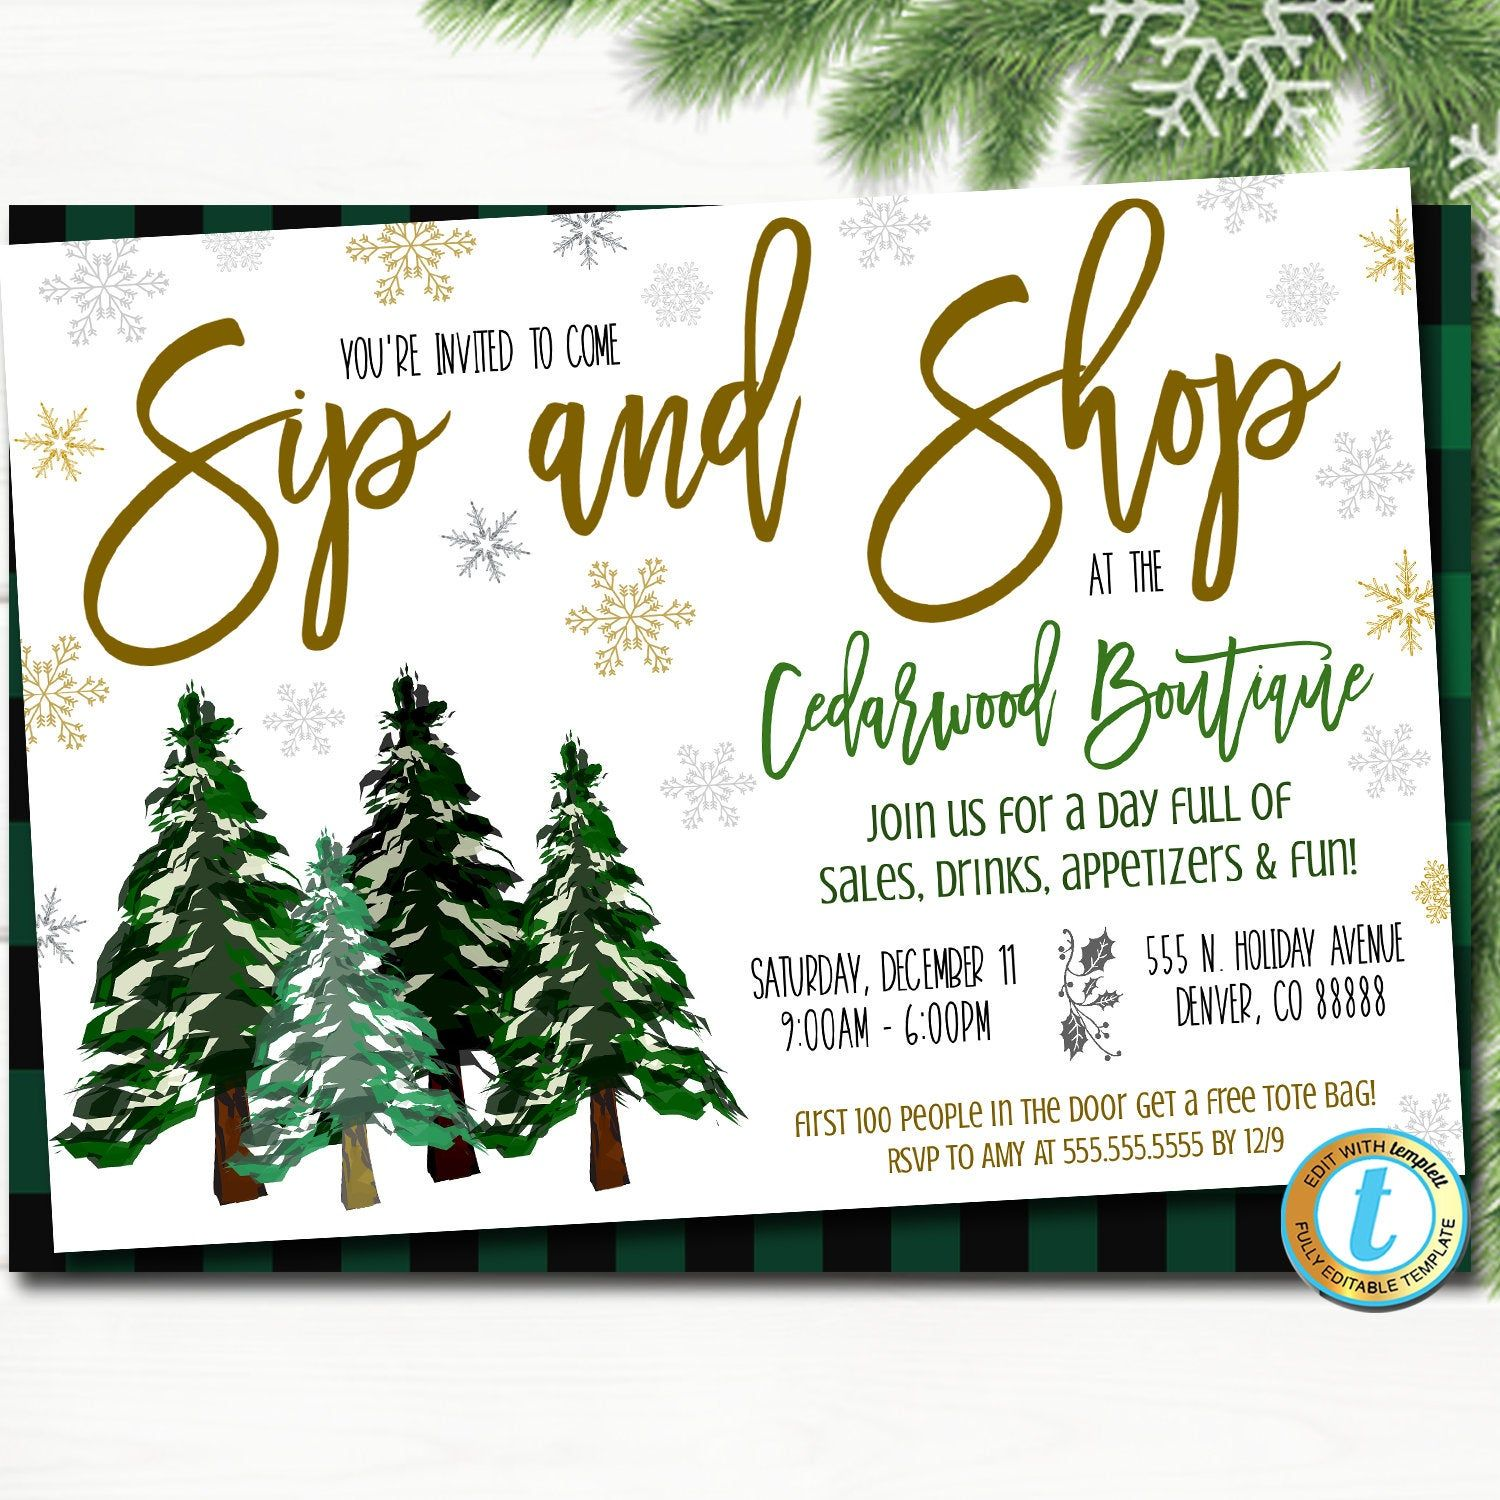 Christmas Open House 2021 Holiday Open House Invitation Christmas Boutique Shopping Etsy In 2021 Holiday Open House Invitations Open House Invitation Open House Party Invitations